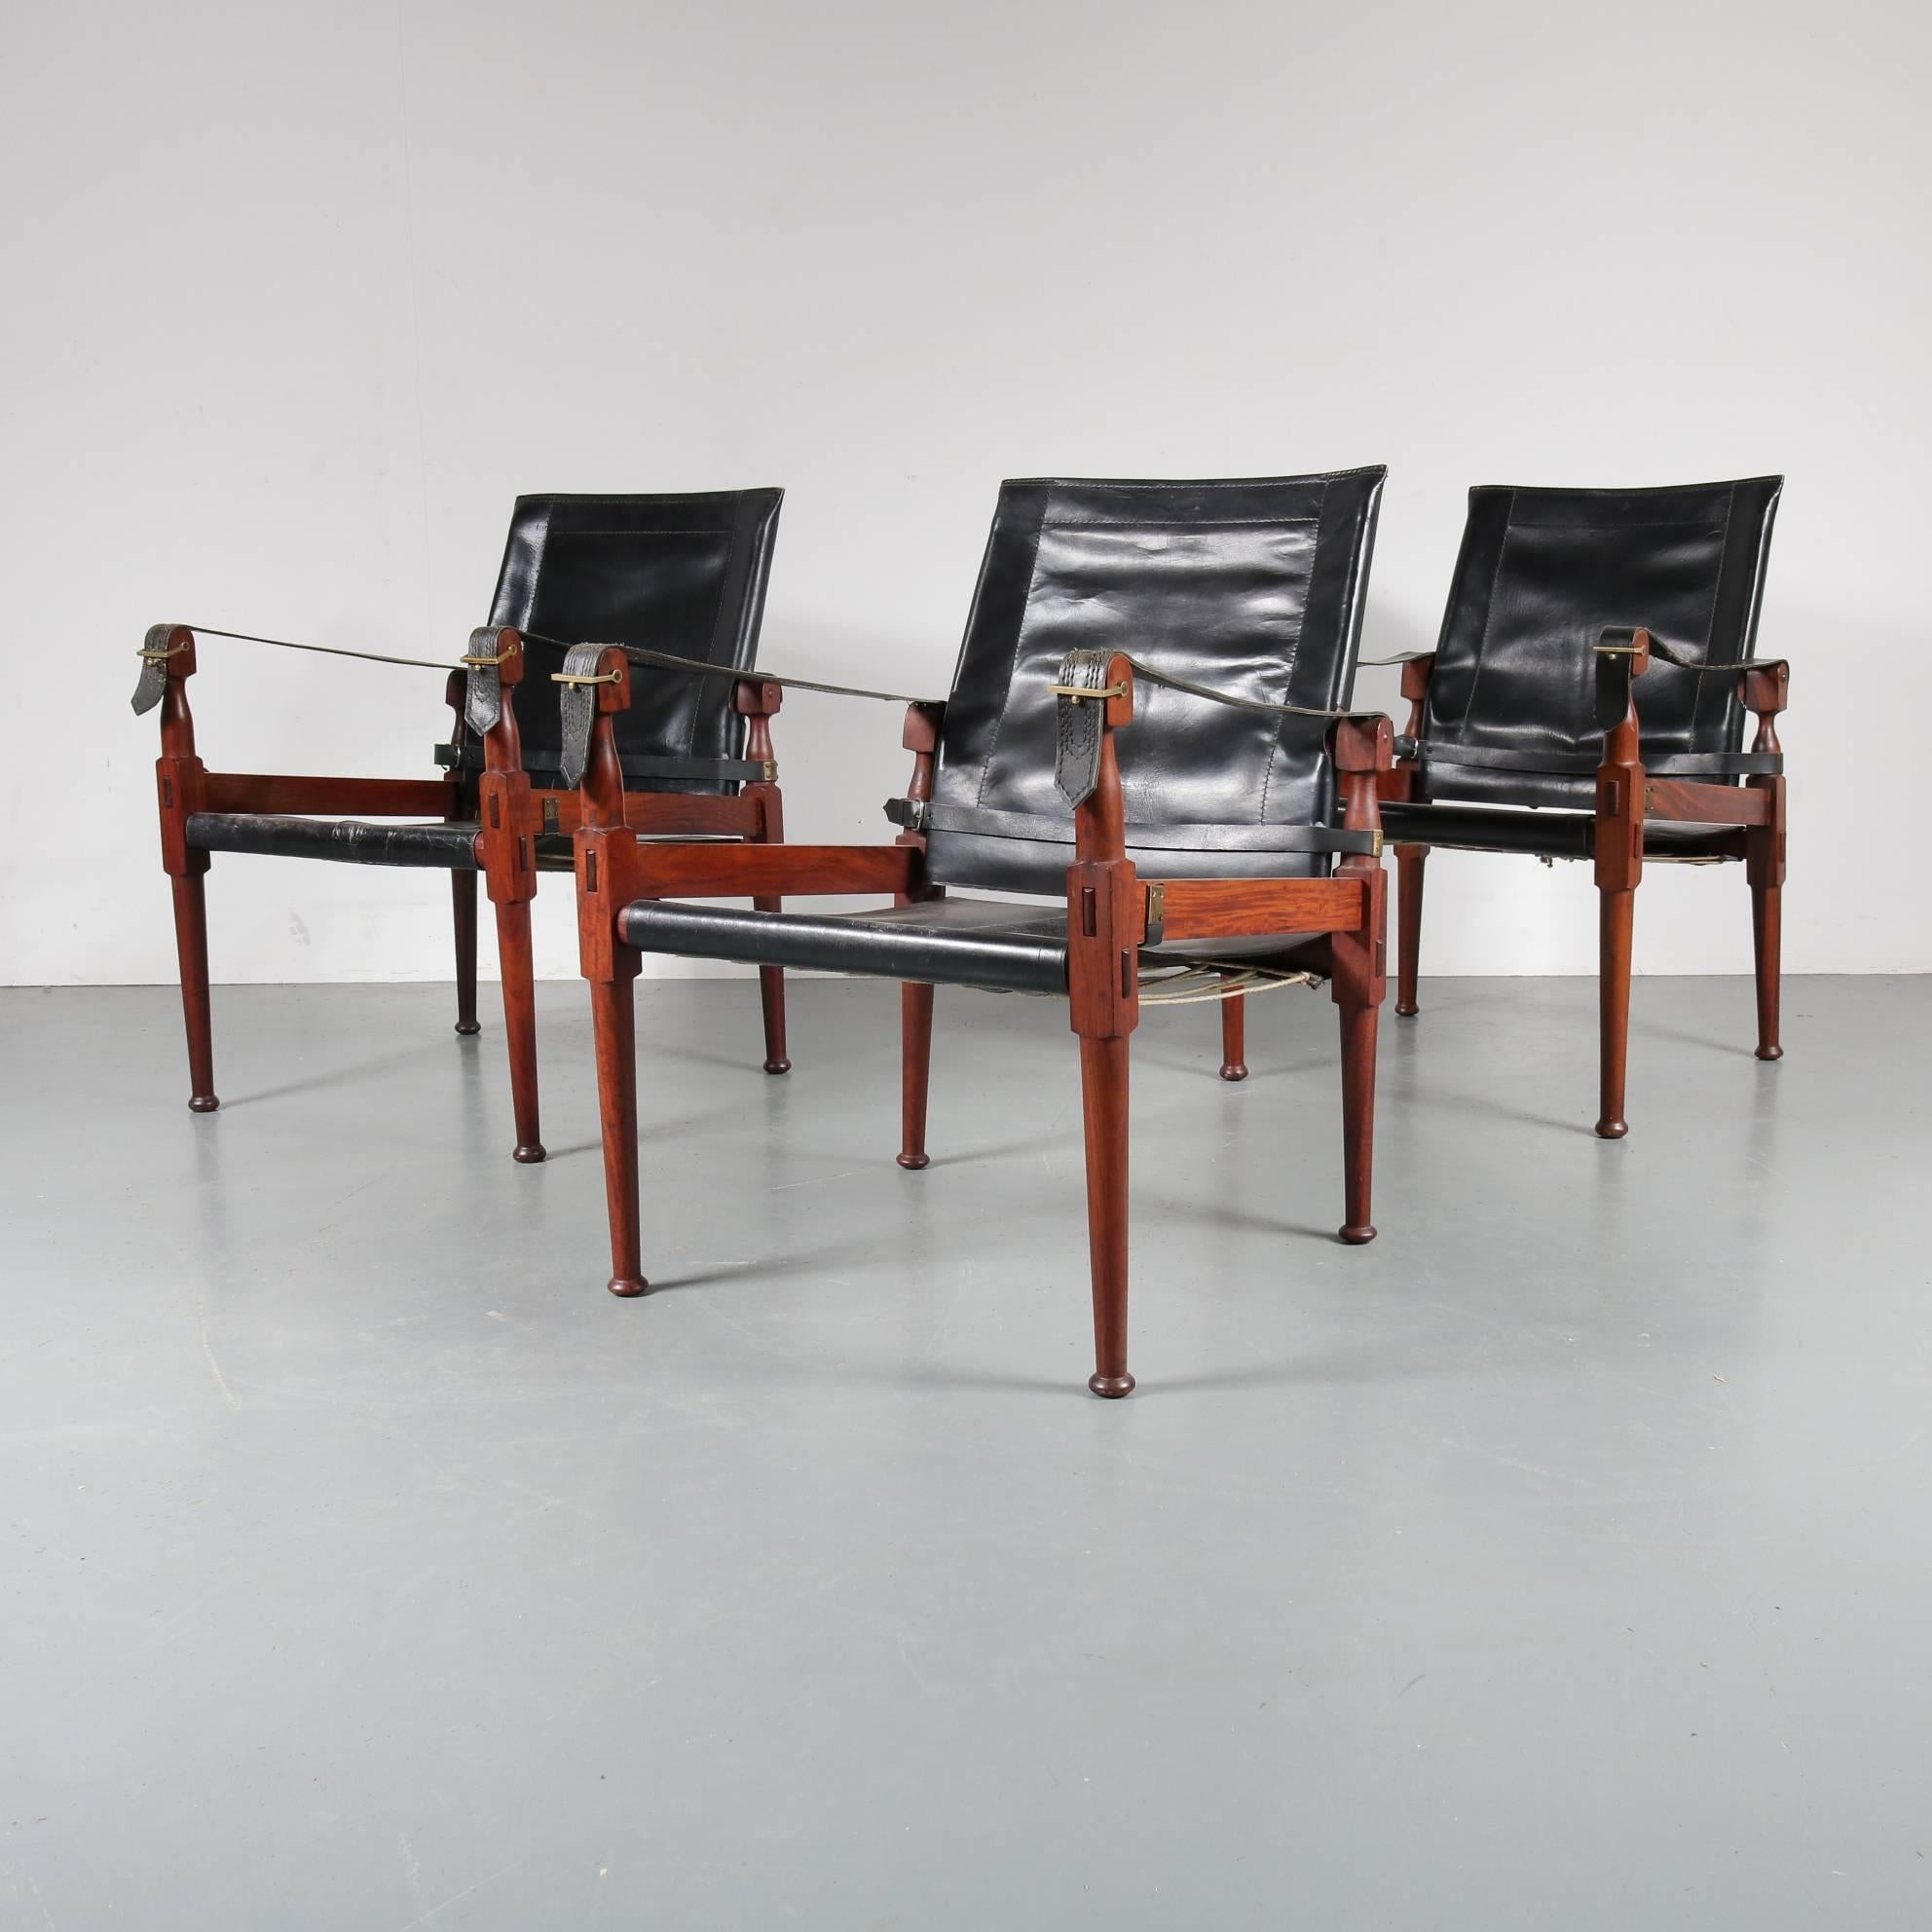 chair design in pakistan revolving tyre hayat and brothers safari chairs 1970 for sale at 1stdibs three beautiful designed manufactured by m